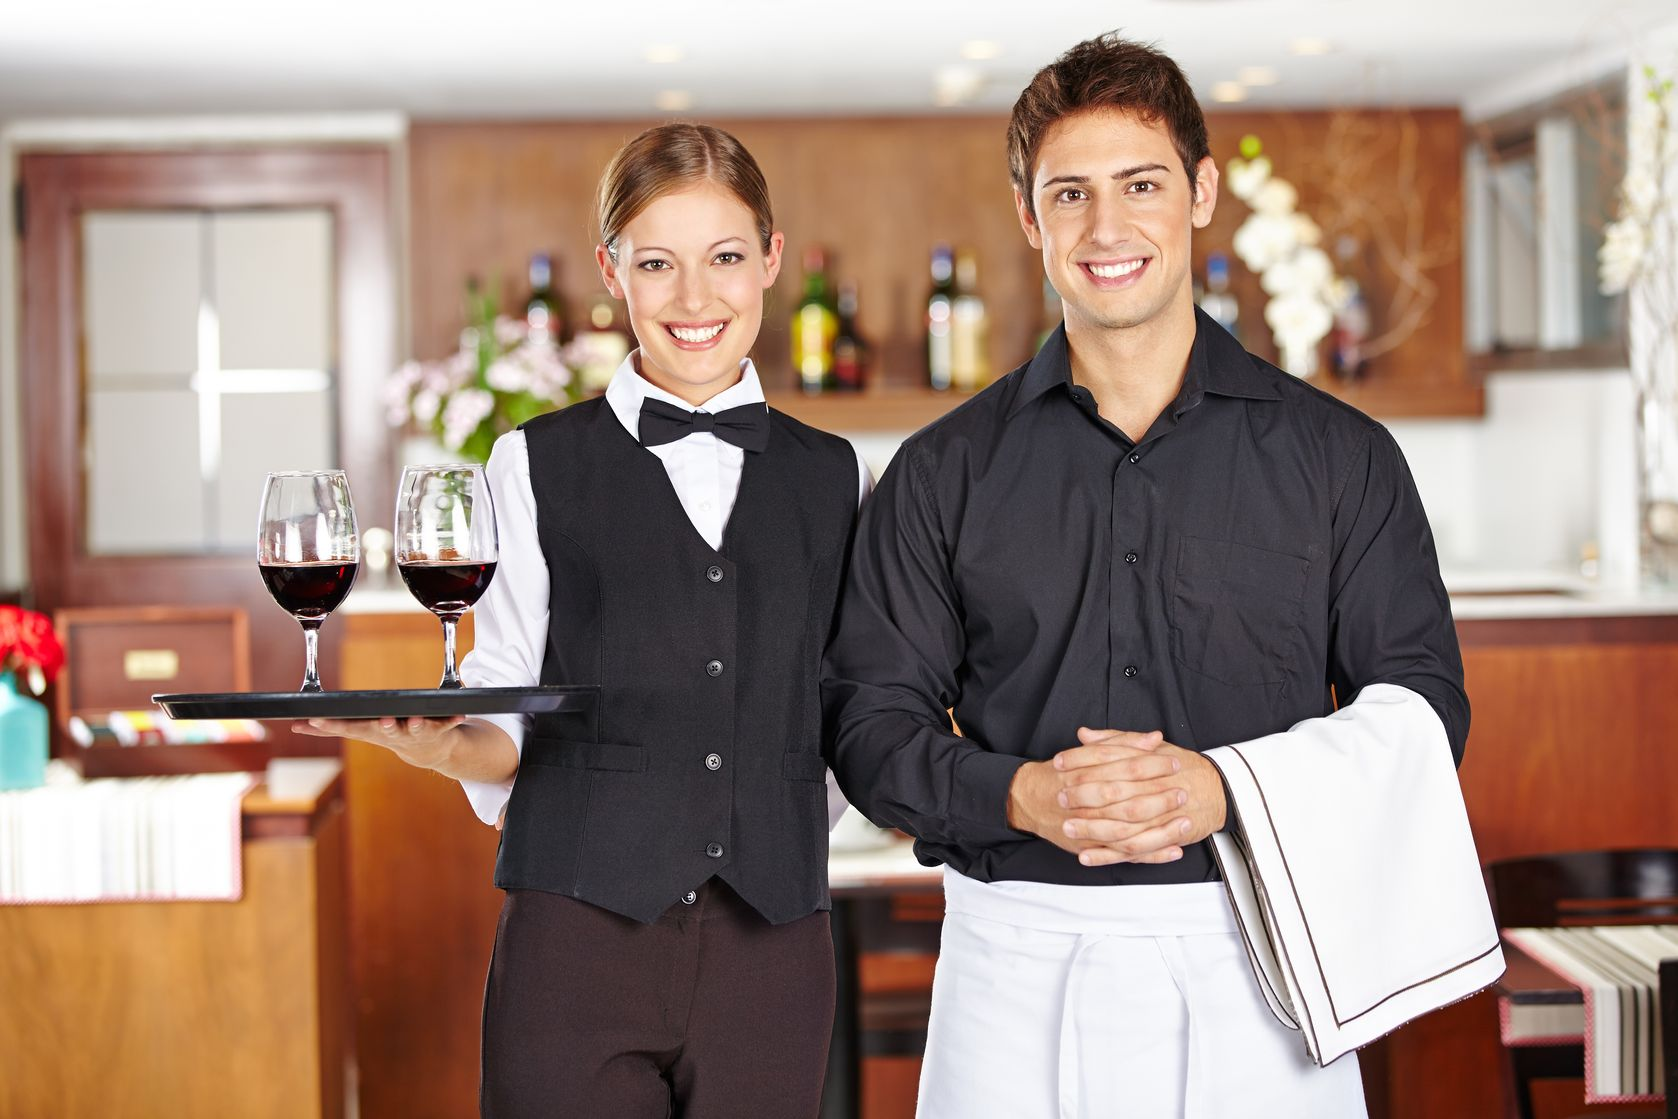 Hospitality and Catering Business for sale in Sunshine Coast